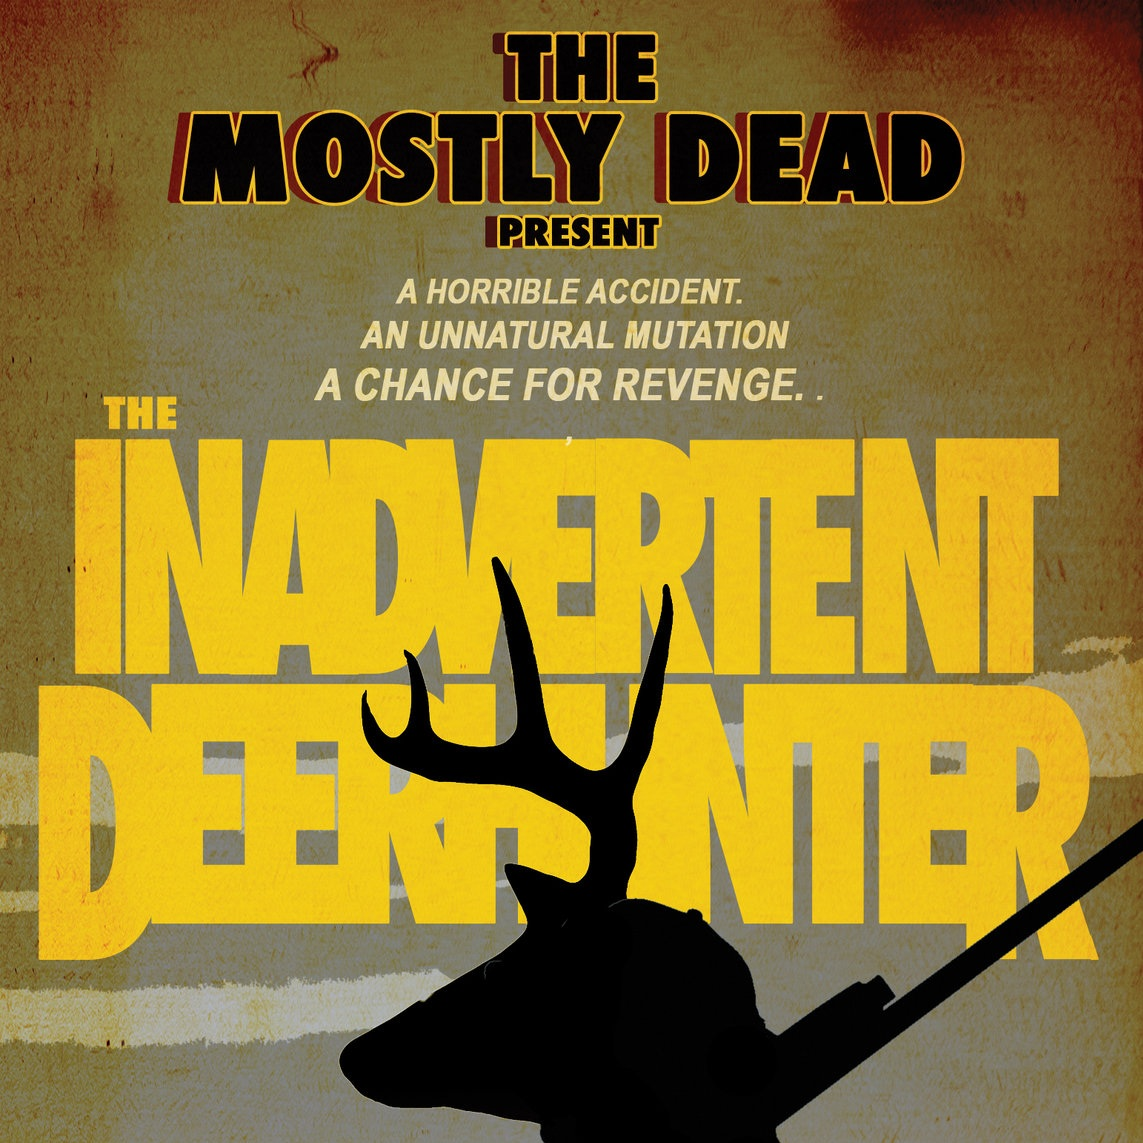 The Mostly Dead - The Inadvertent Deerhunter - Released MARCH 29 2019